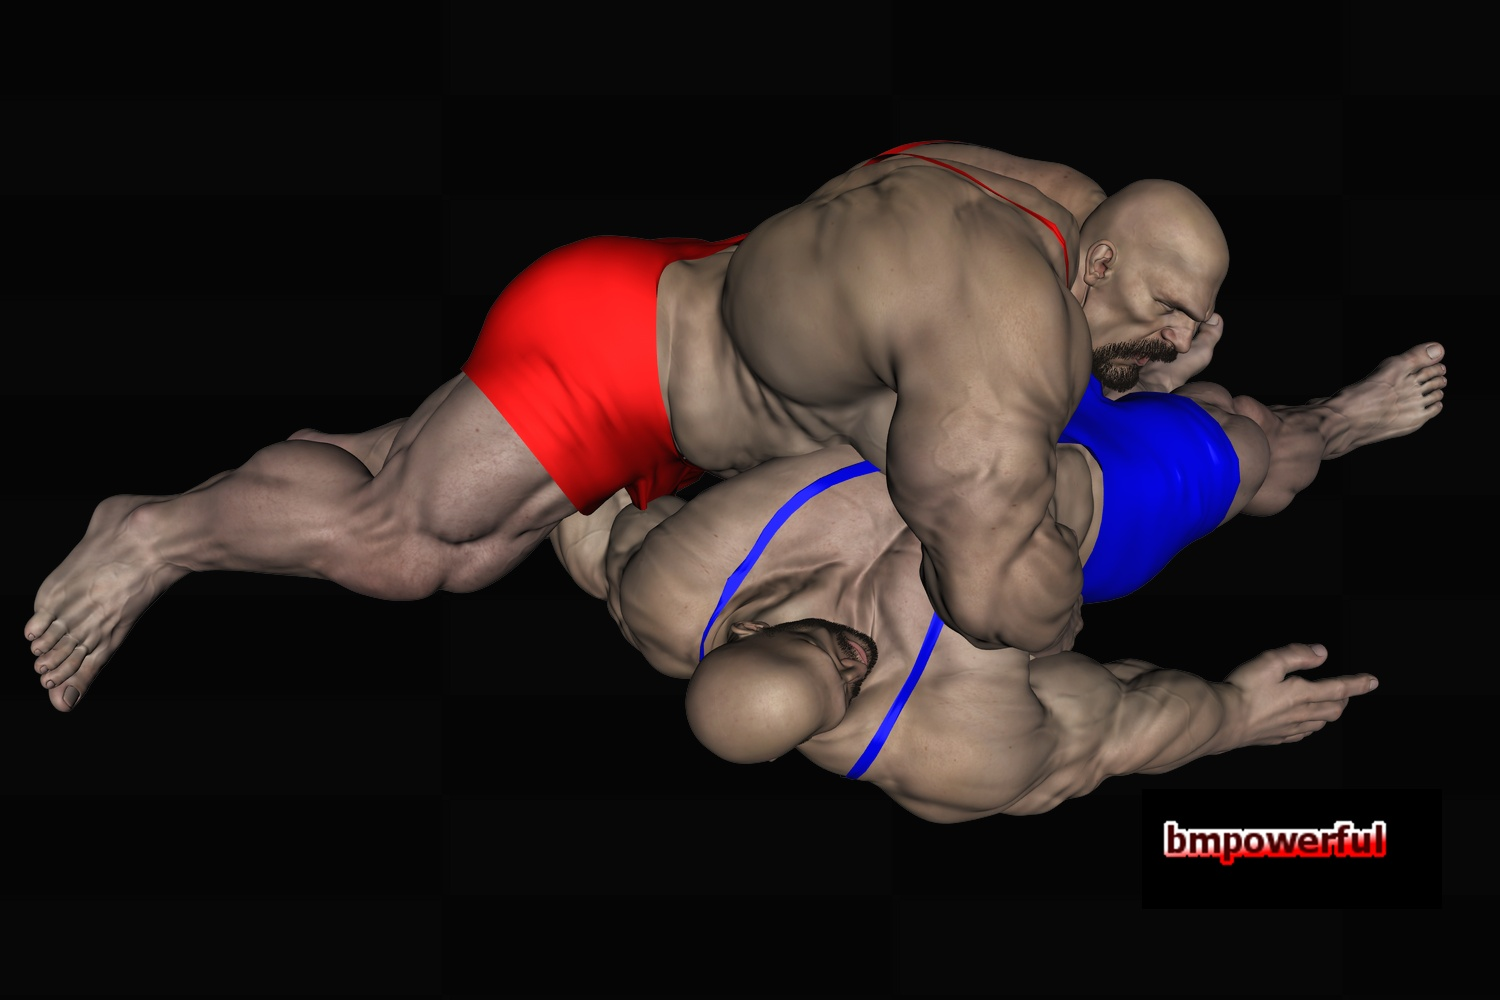 from Greyson 3d art gay wrestling